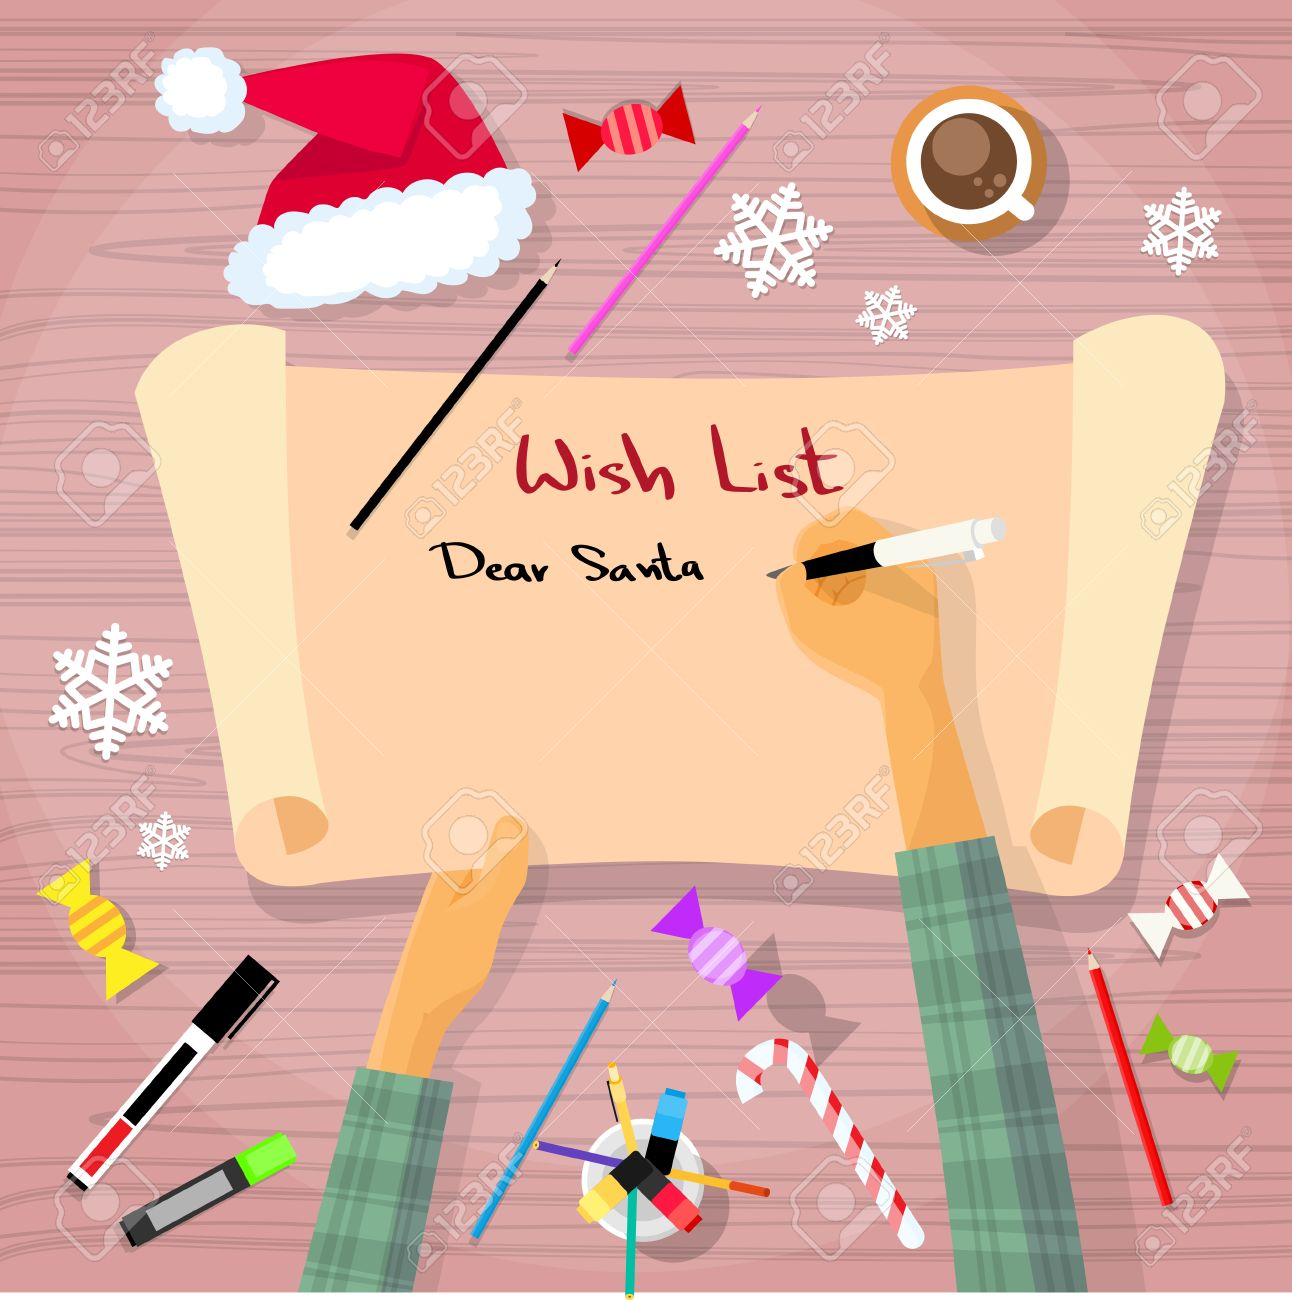 Merry Christmas Wish List To Santa Clause Child Hand Writing Pen On Paper  Desk Flat Vector  Christmas Wish List Paper